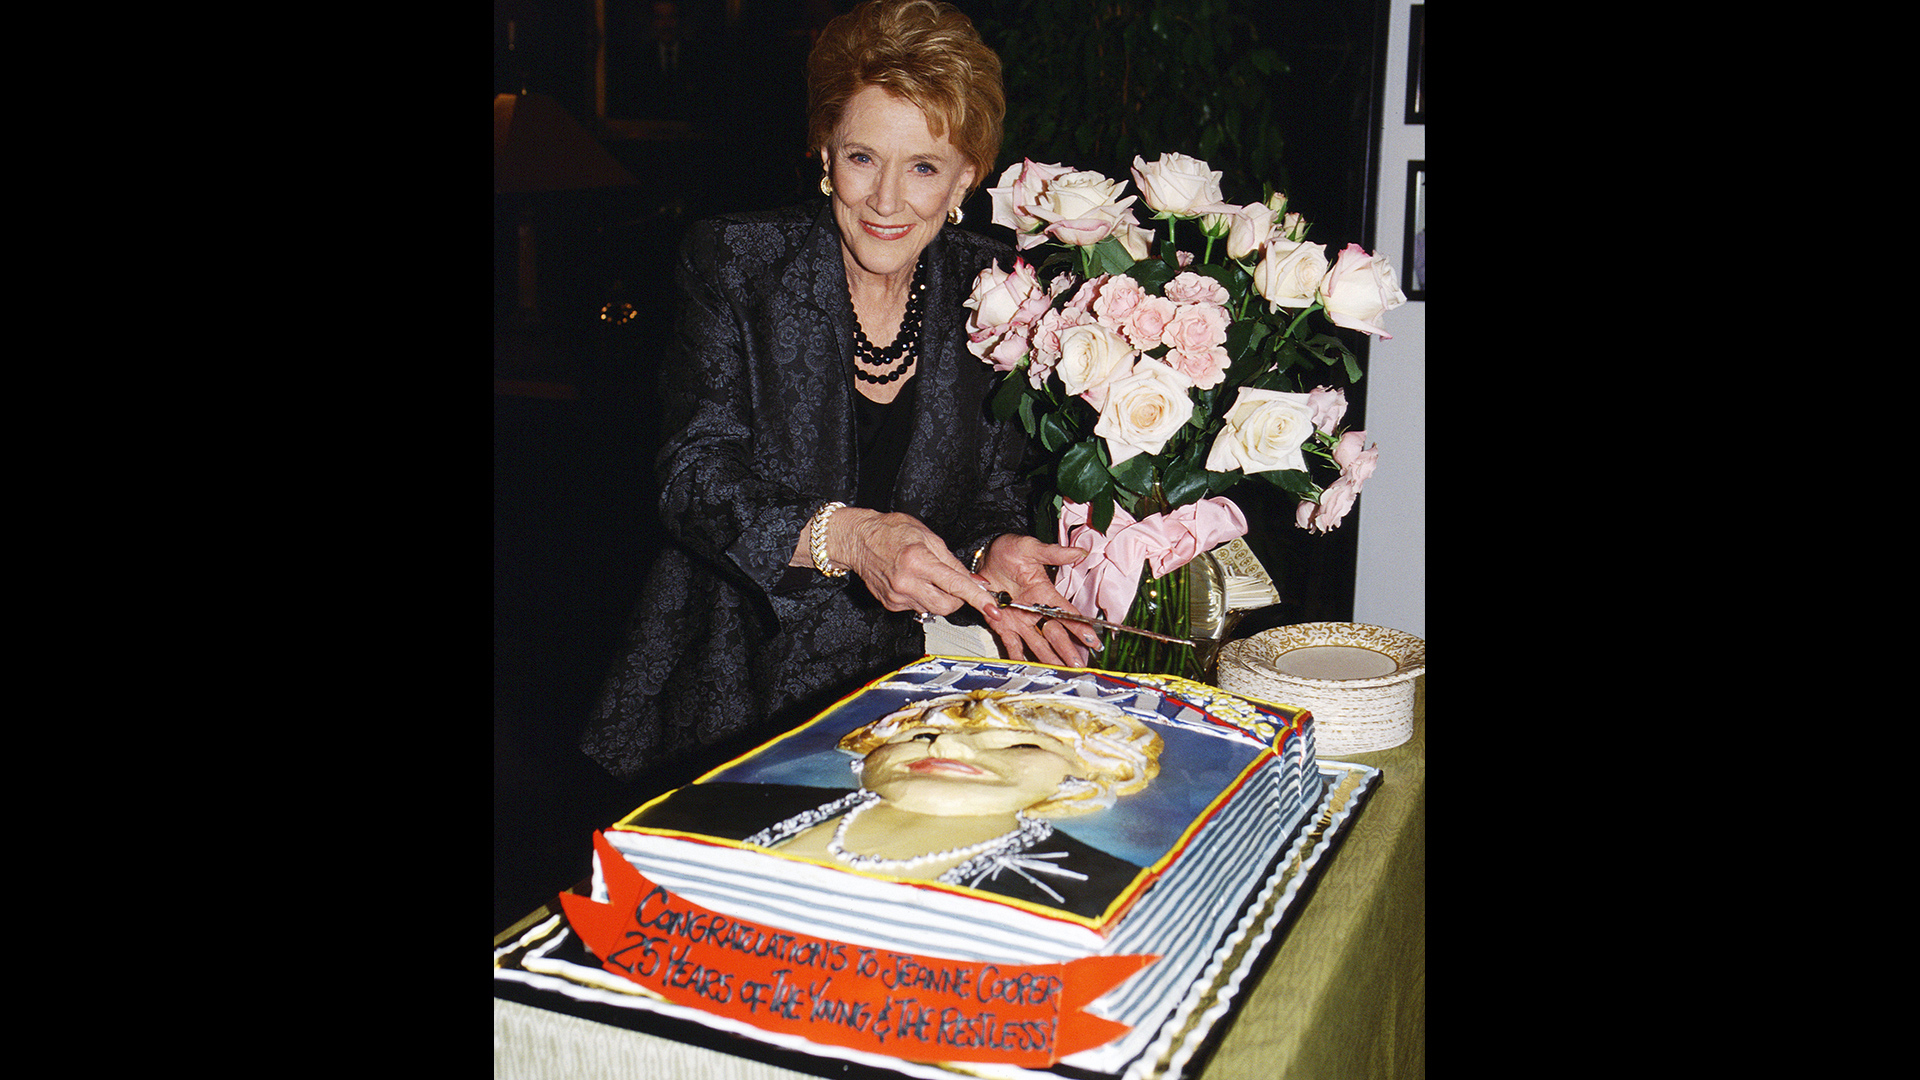 Jeanne Cooper cuts the cake as she achieves 25 years on Y&R.